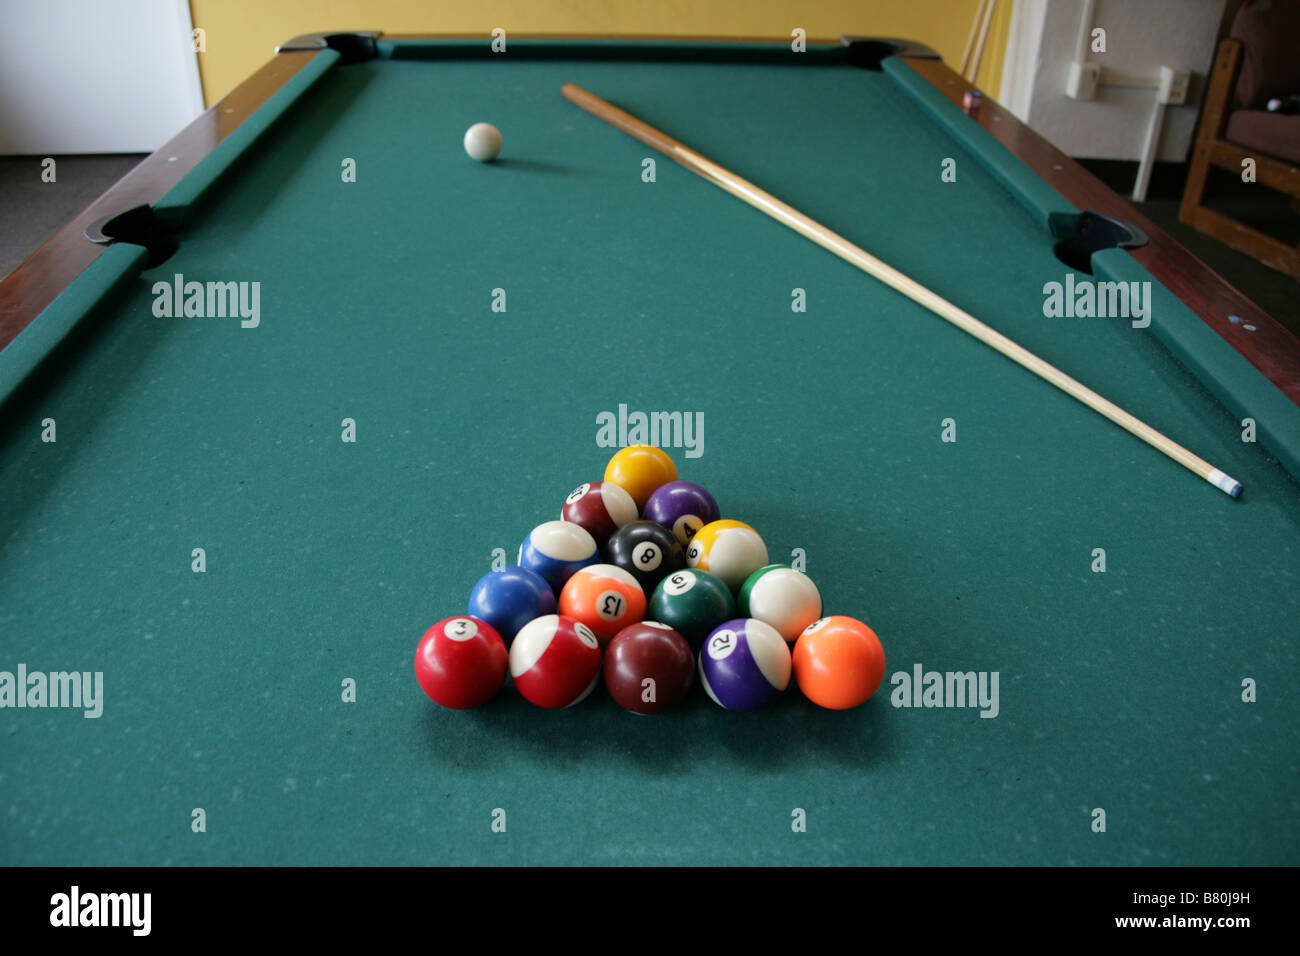 pool balls set stock photos pool balls set stock images. Black Bedroom Furniture Sets. Home Design Ideas